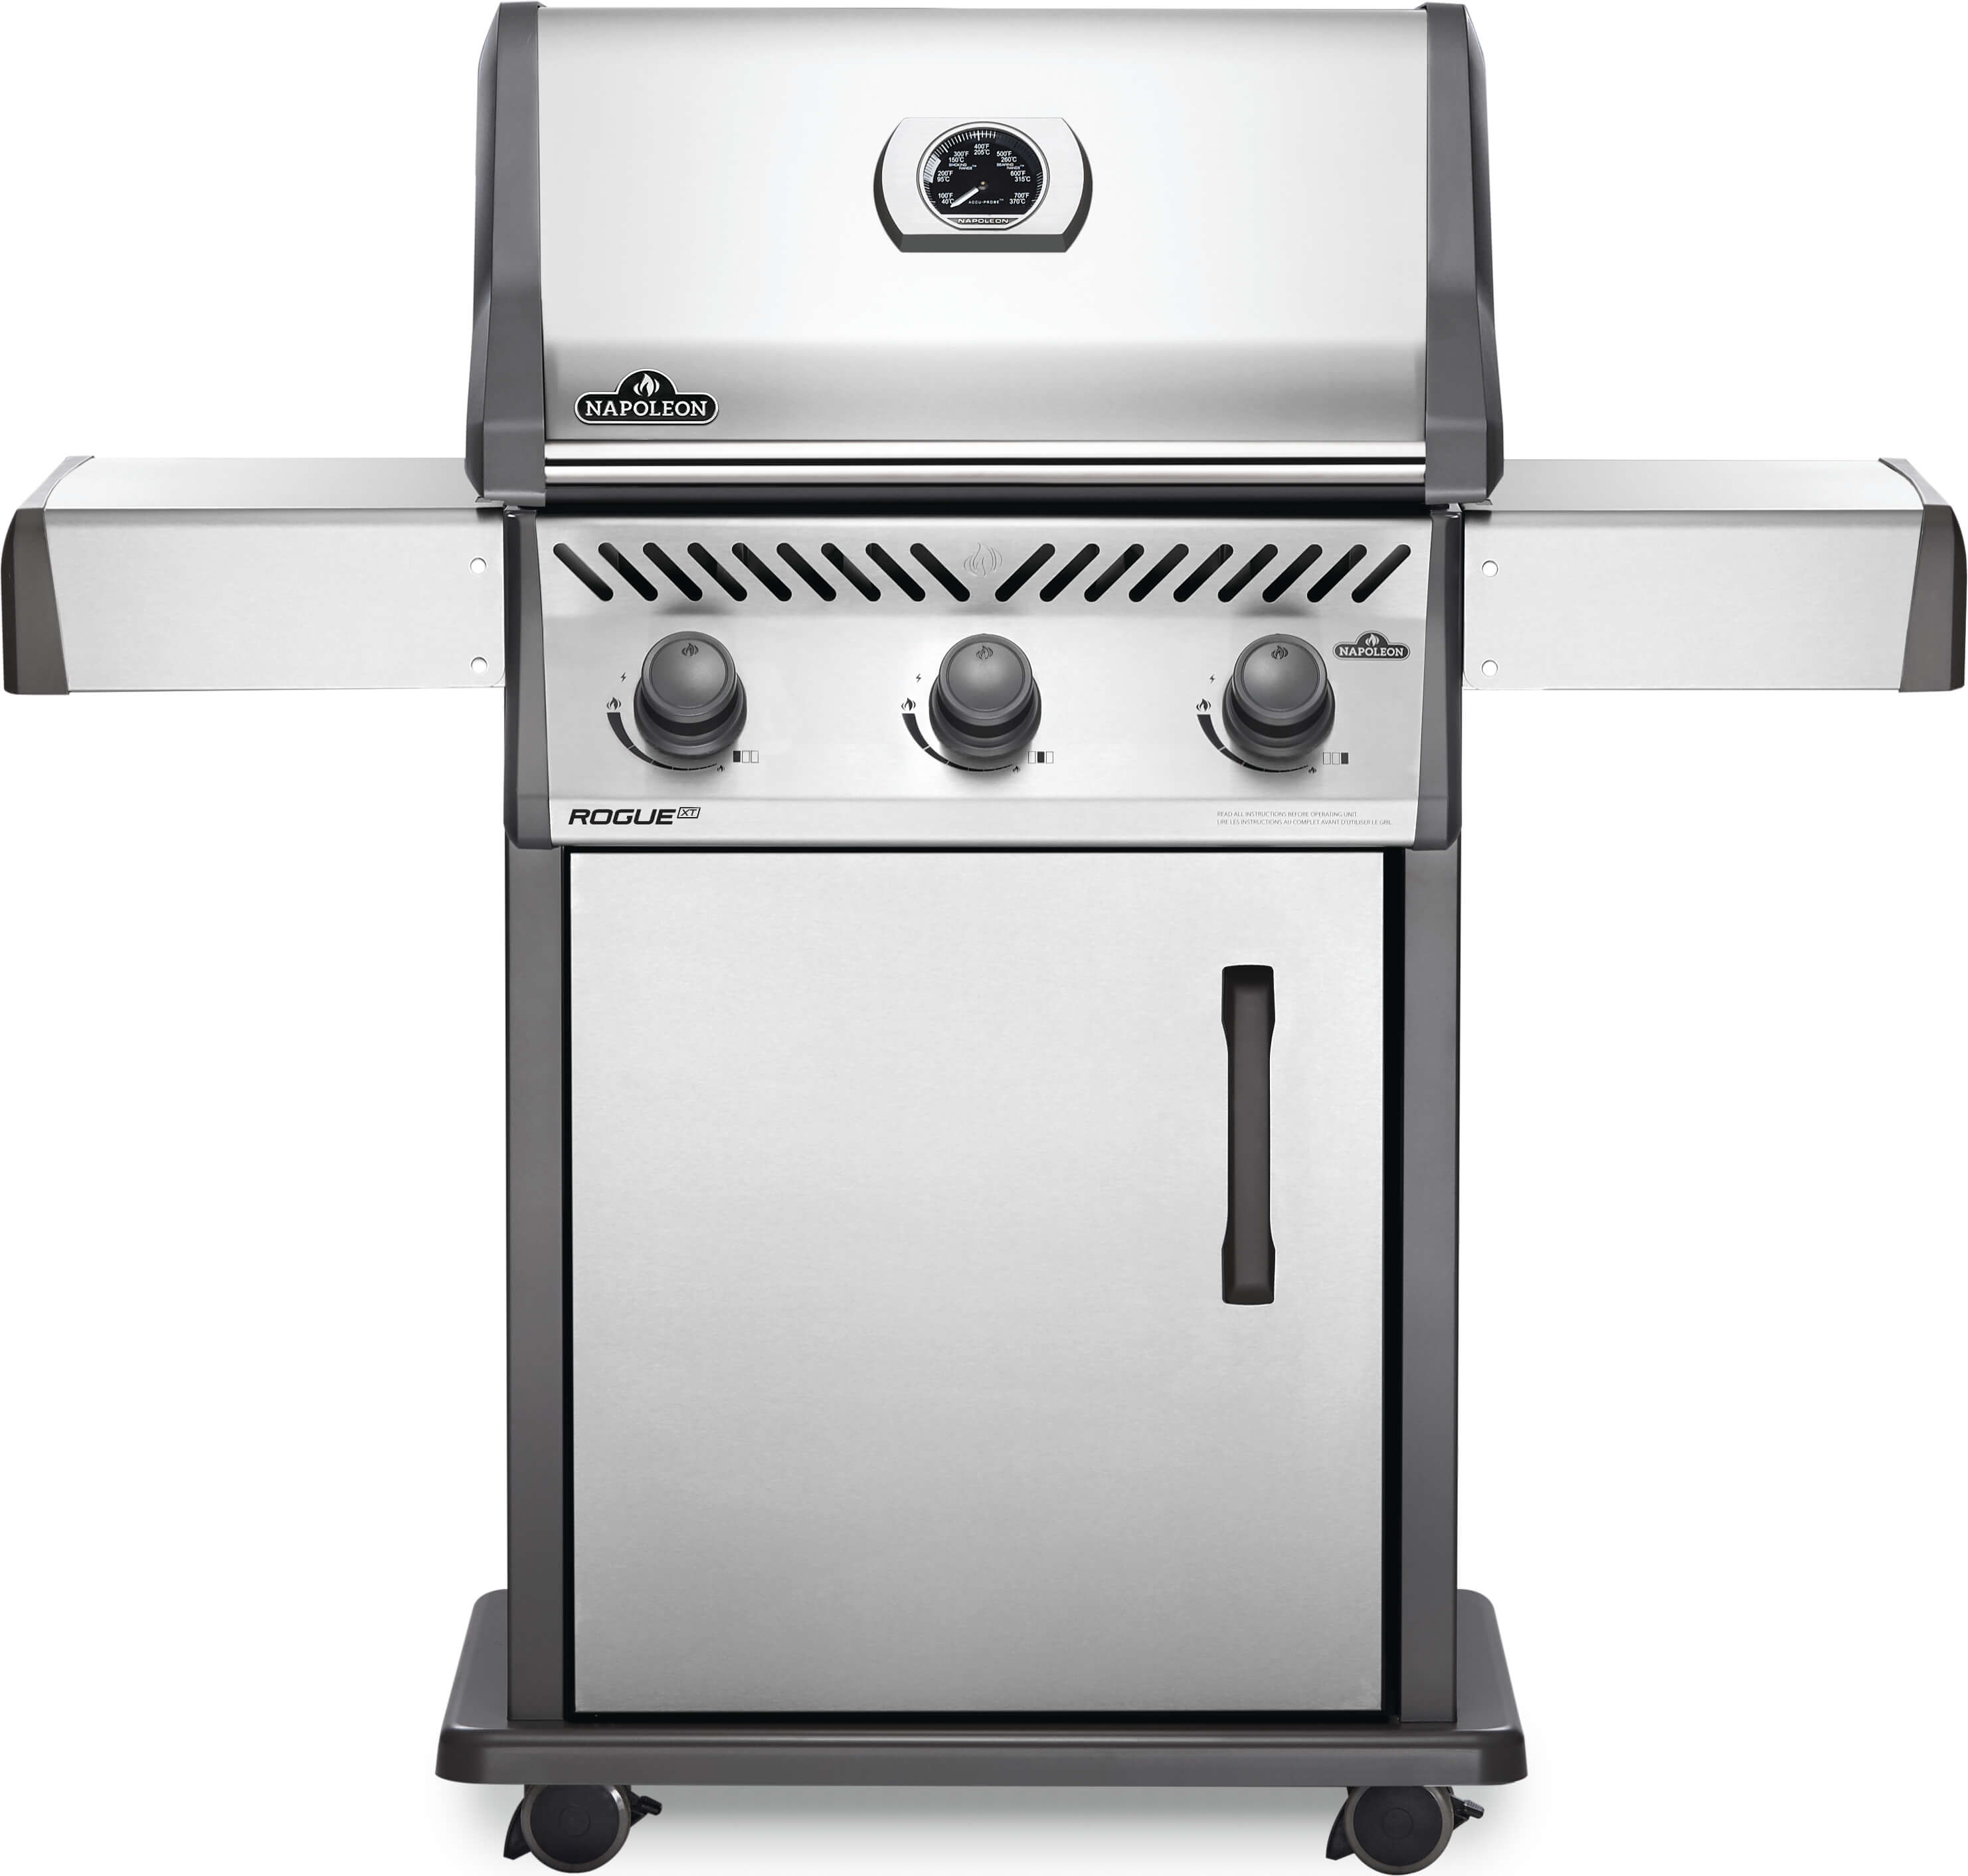 Rogue® XT 425 Natural Gas Grill, Stainless Steel